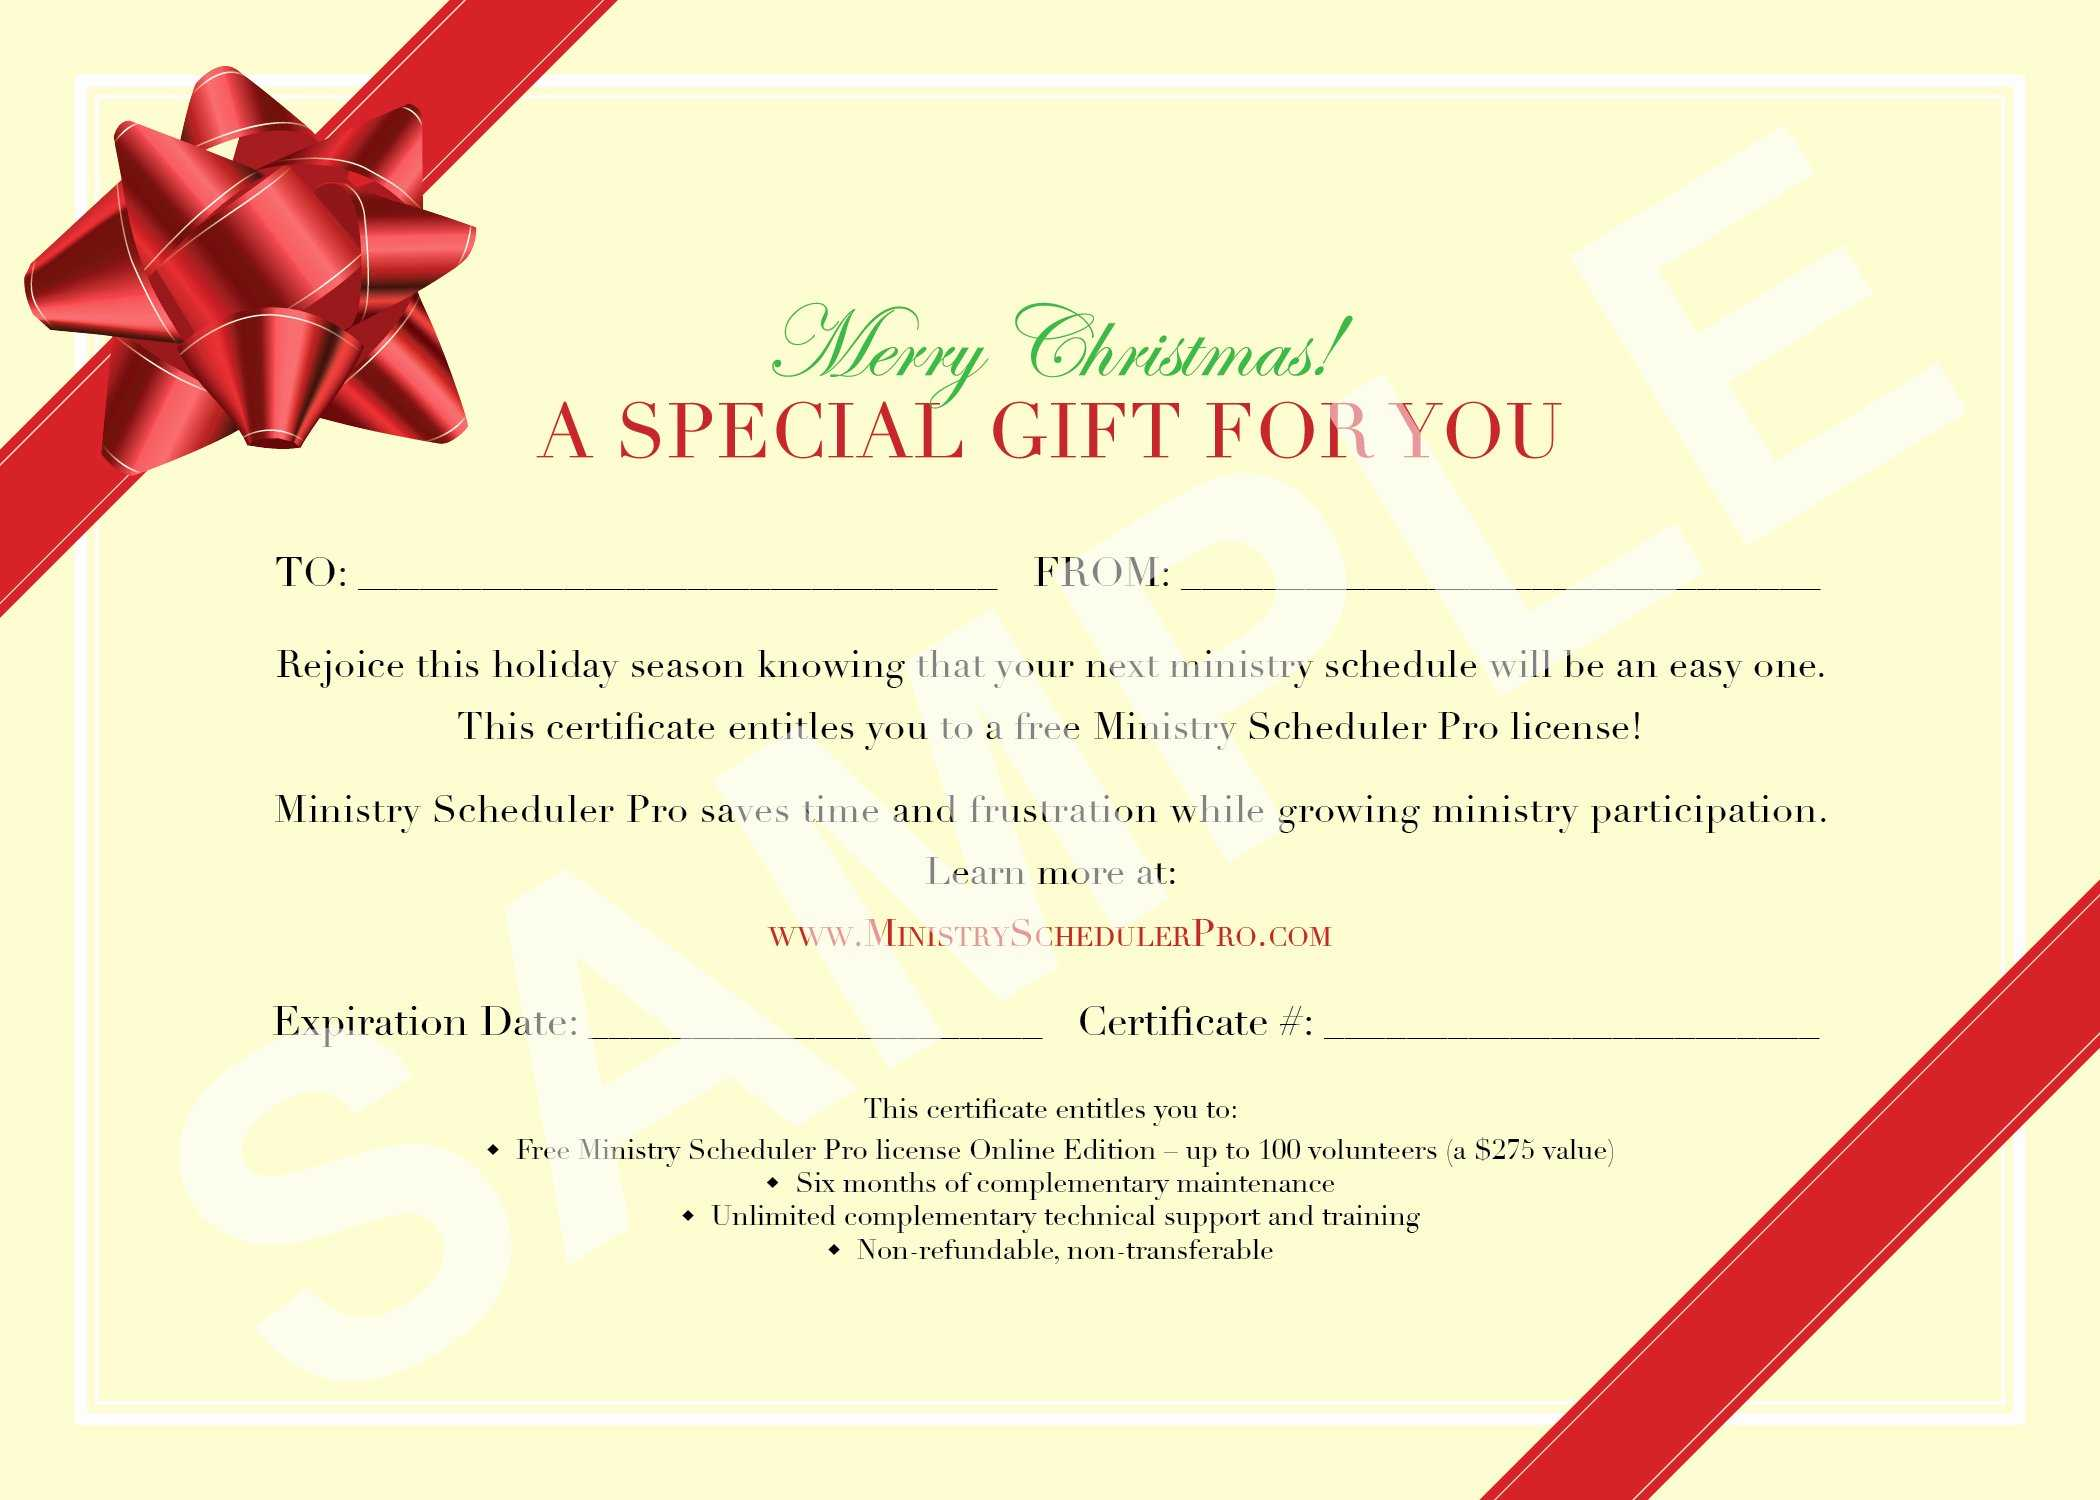 The Bearer Of This Certificate Is Entitled To Template Best For This Entitles The Bearer To Template Certificate